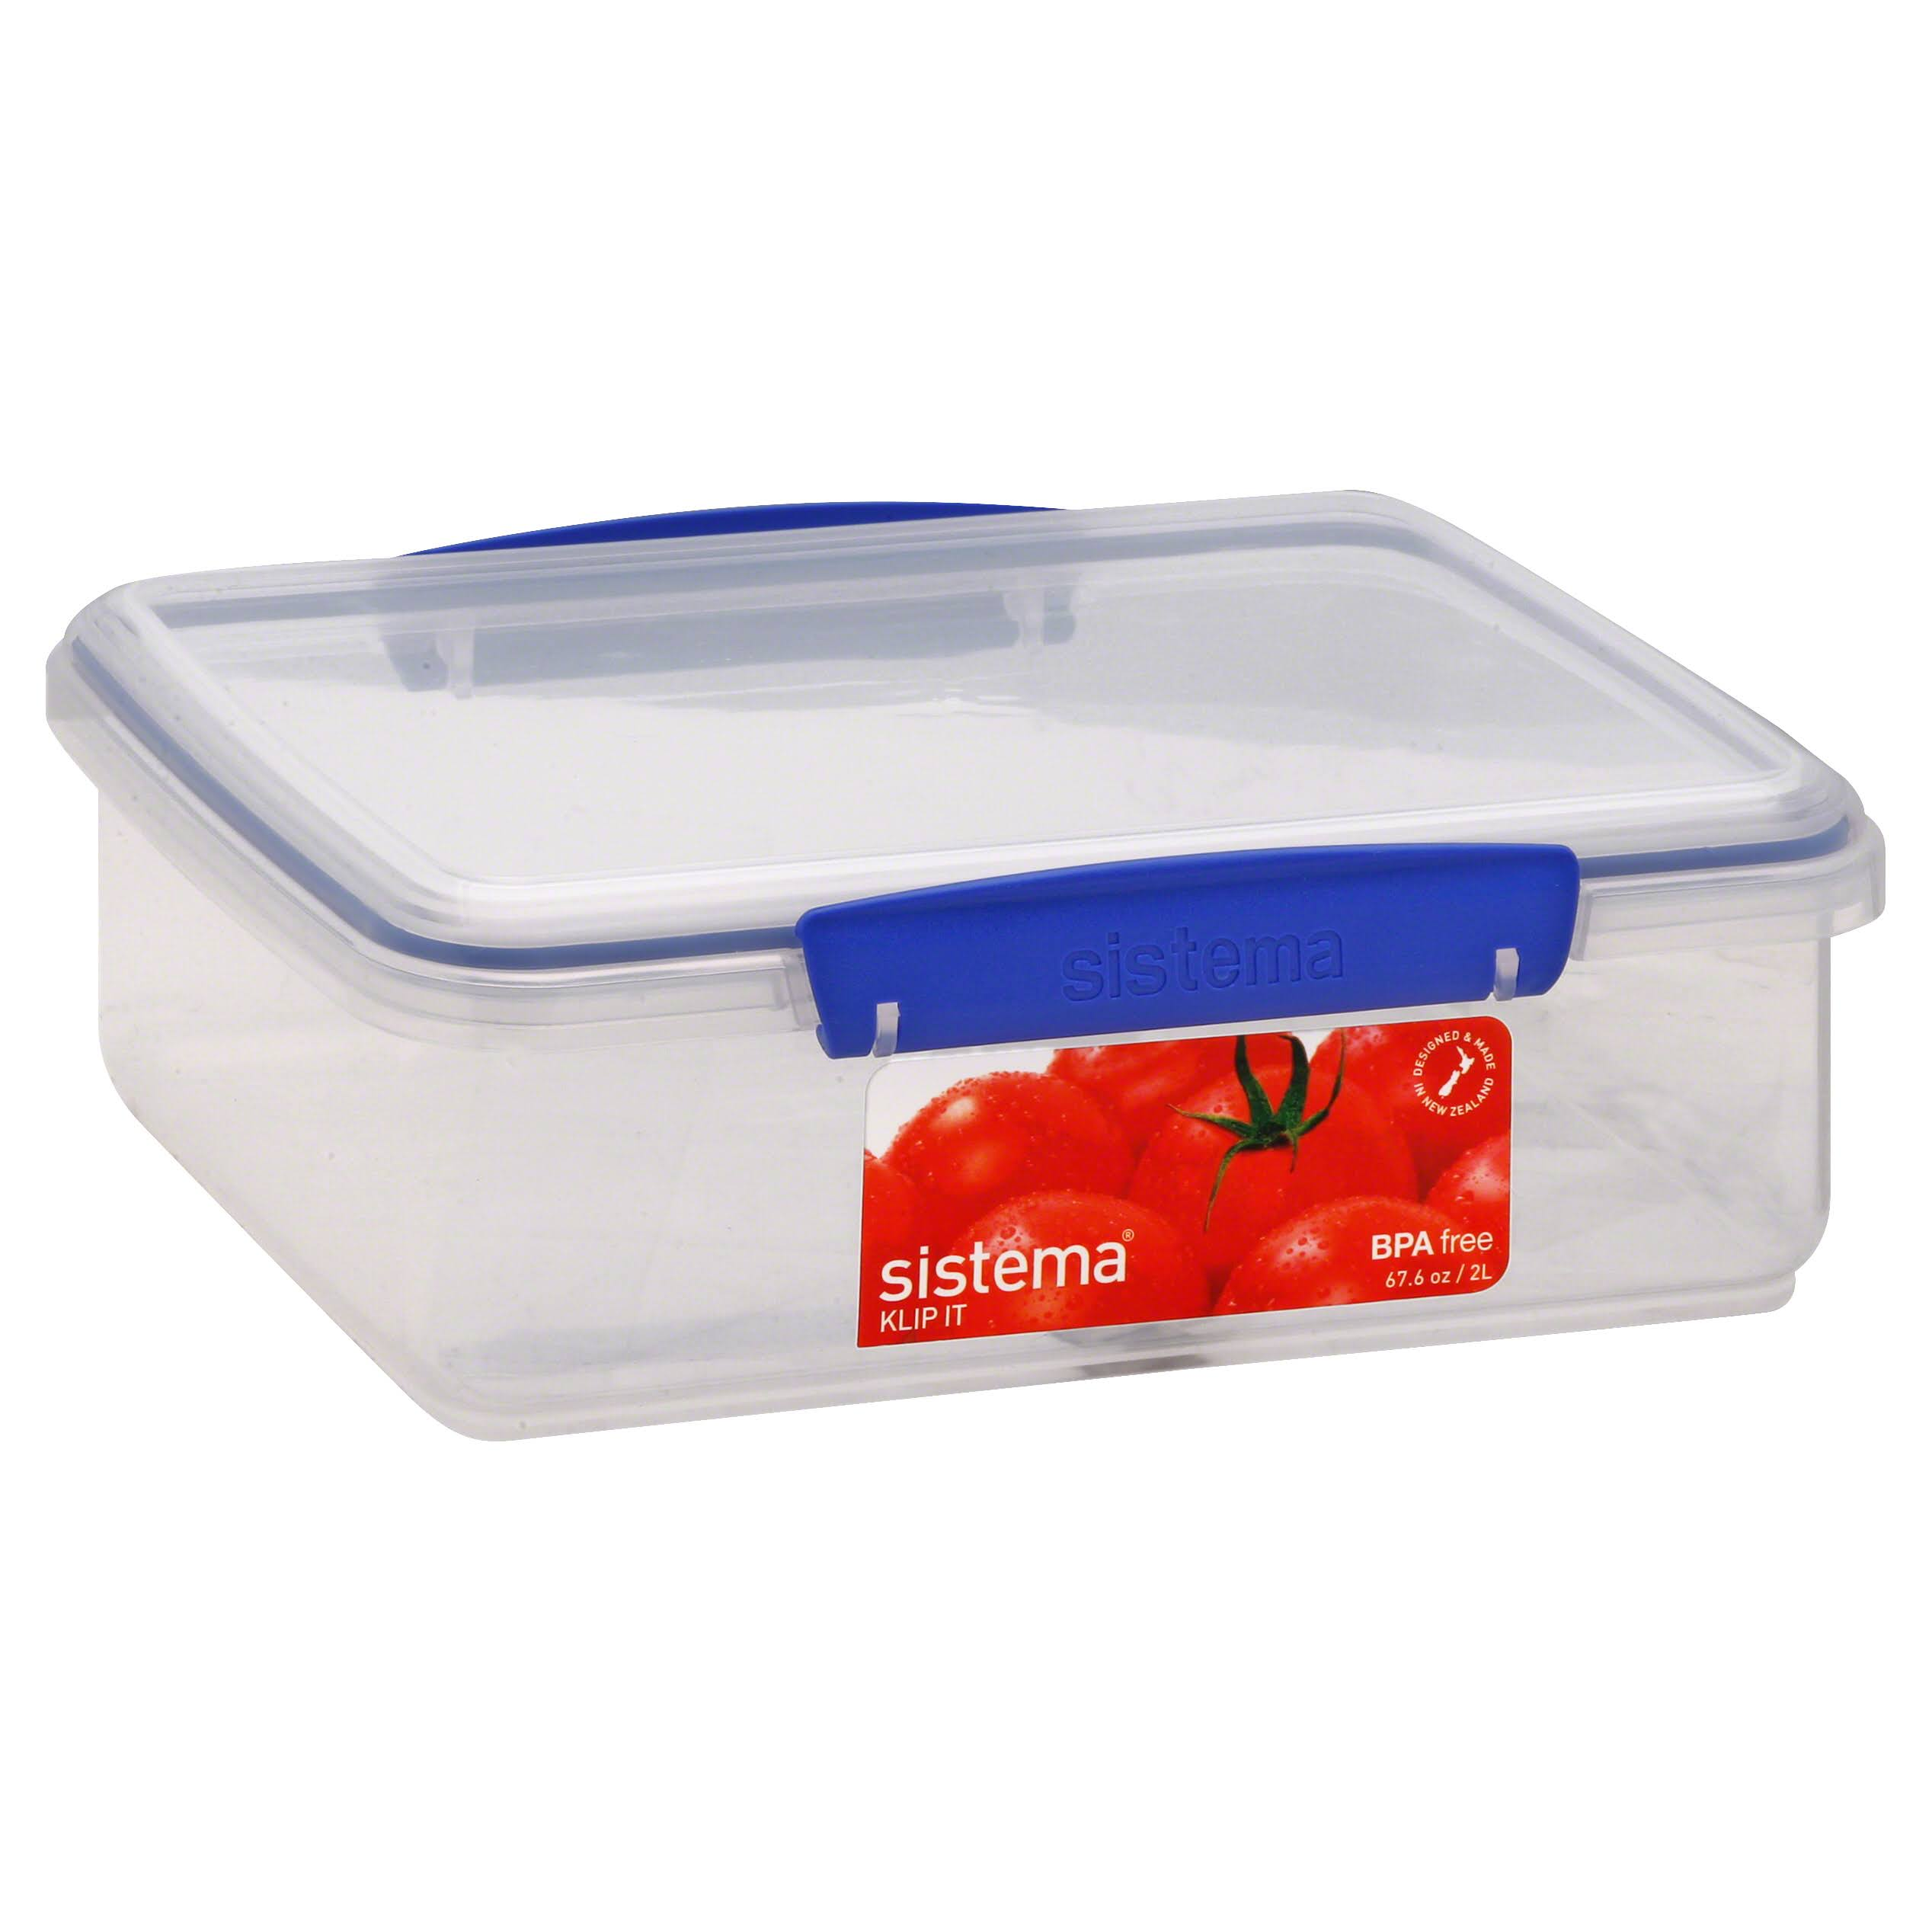 Sistema Klip It Rectangular Food Container - Clear, 2l